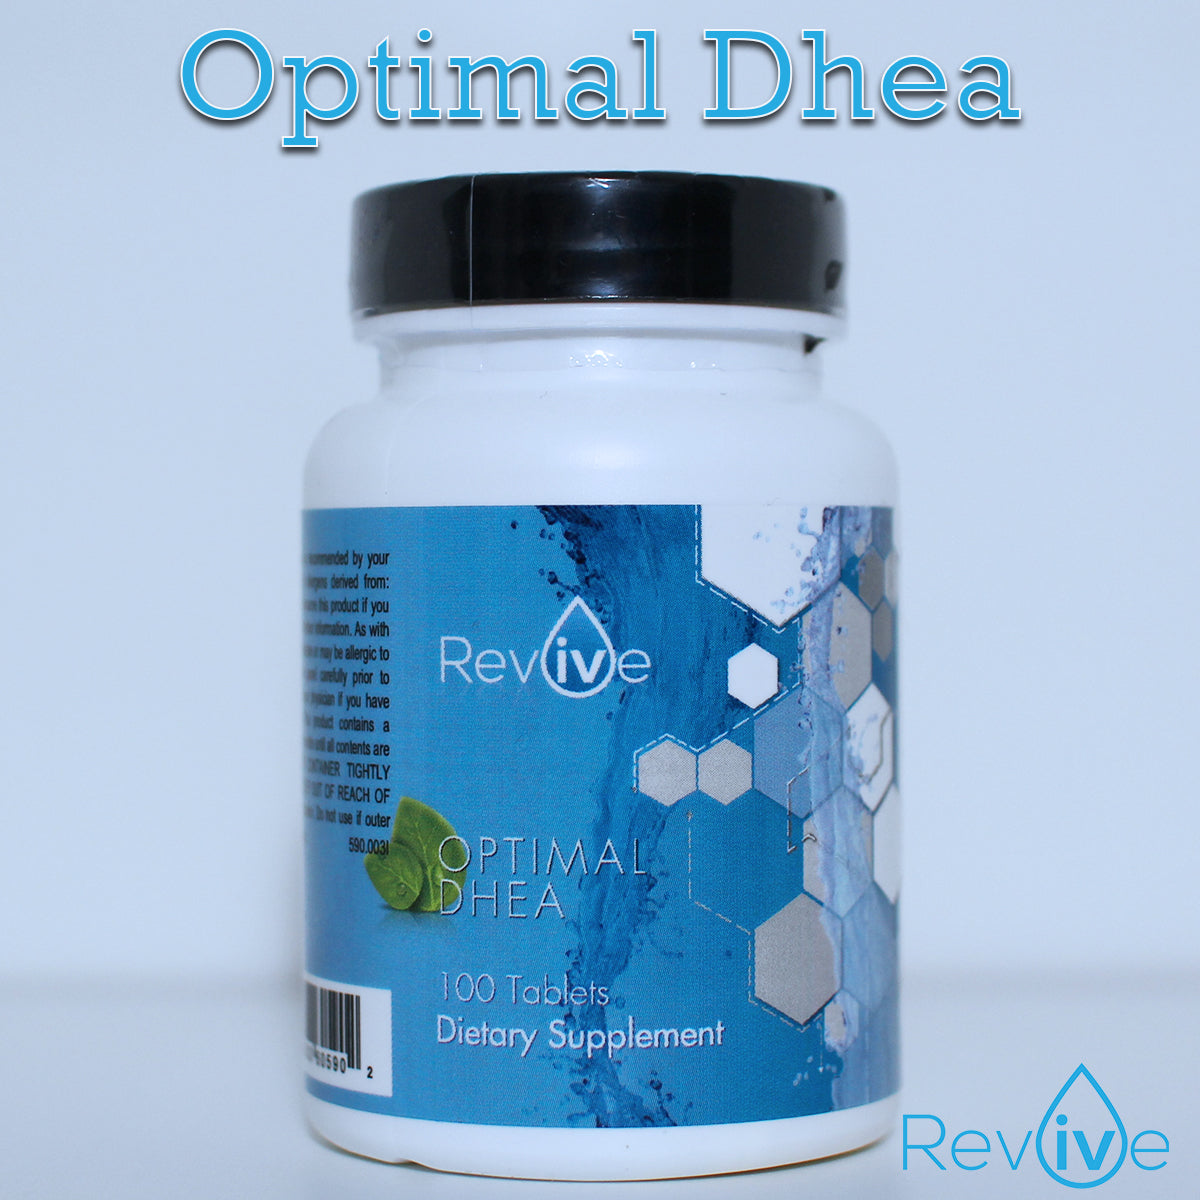 Optimal Dhea - Revive Therapy and Wellness